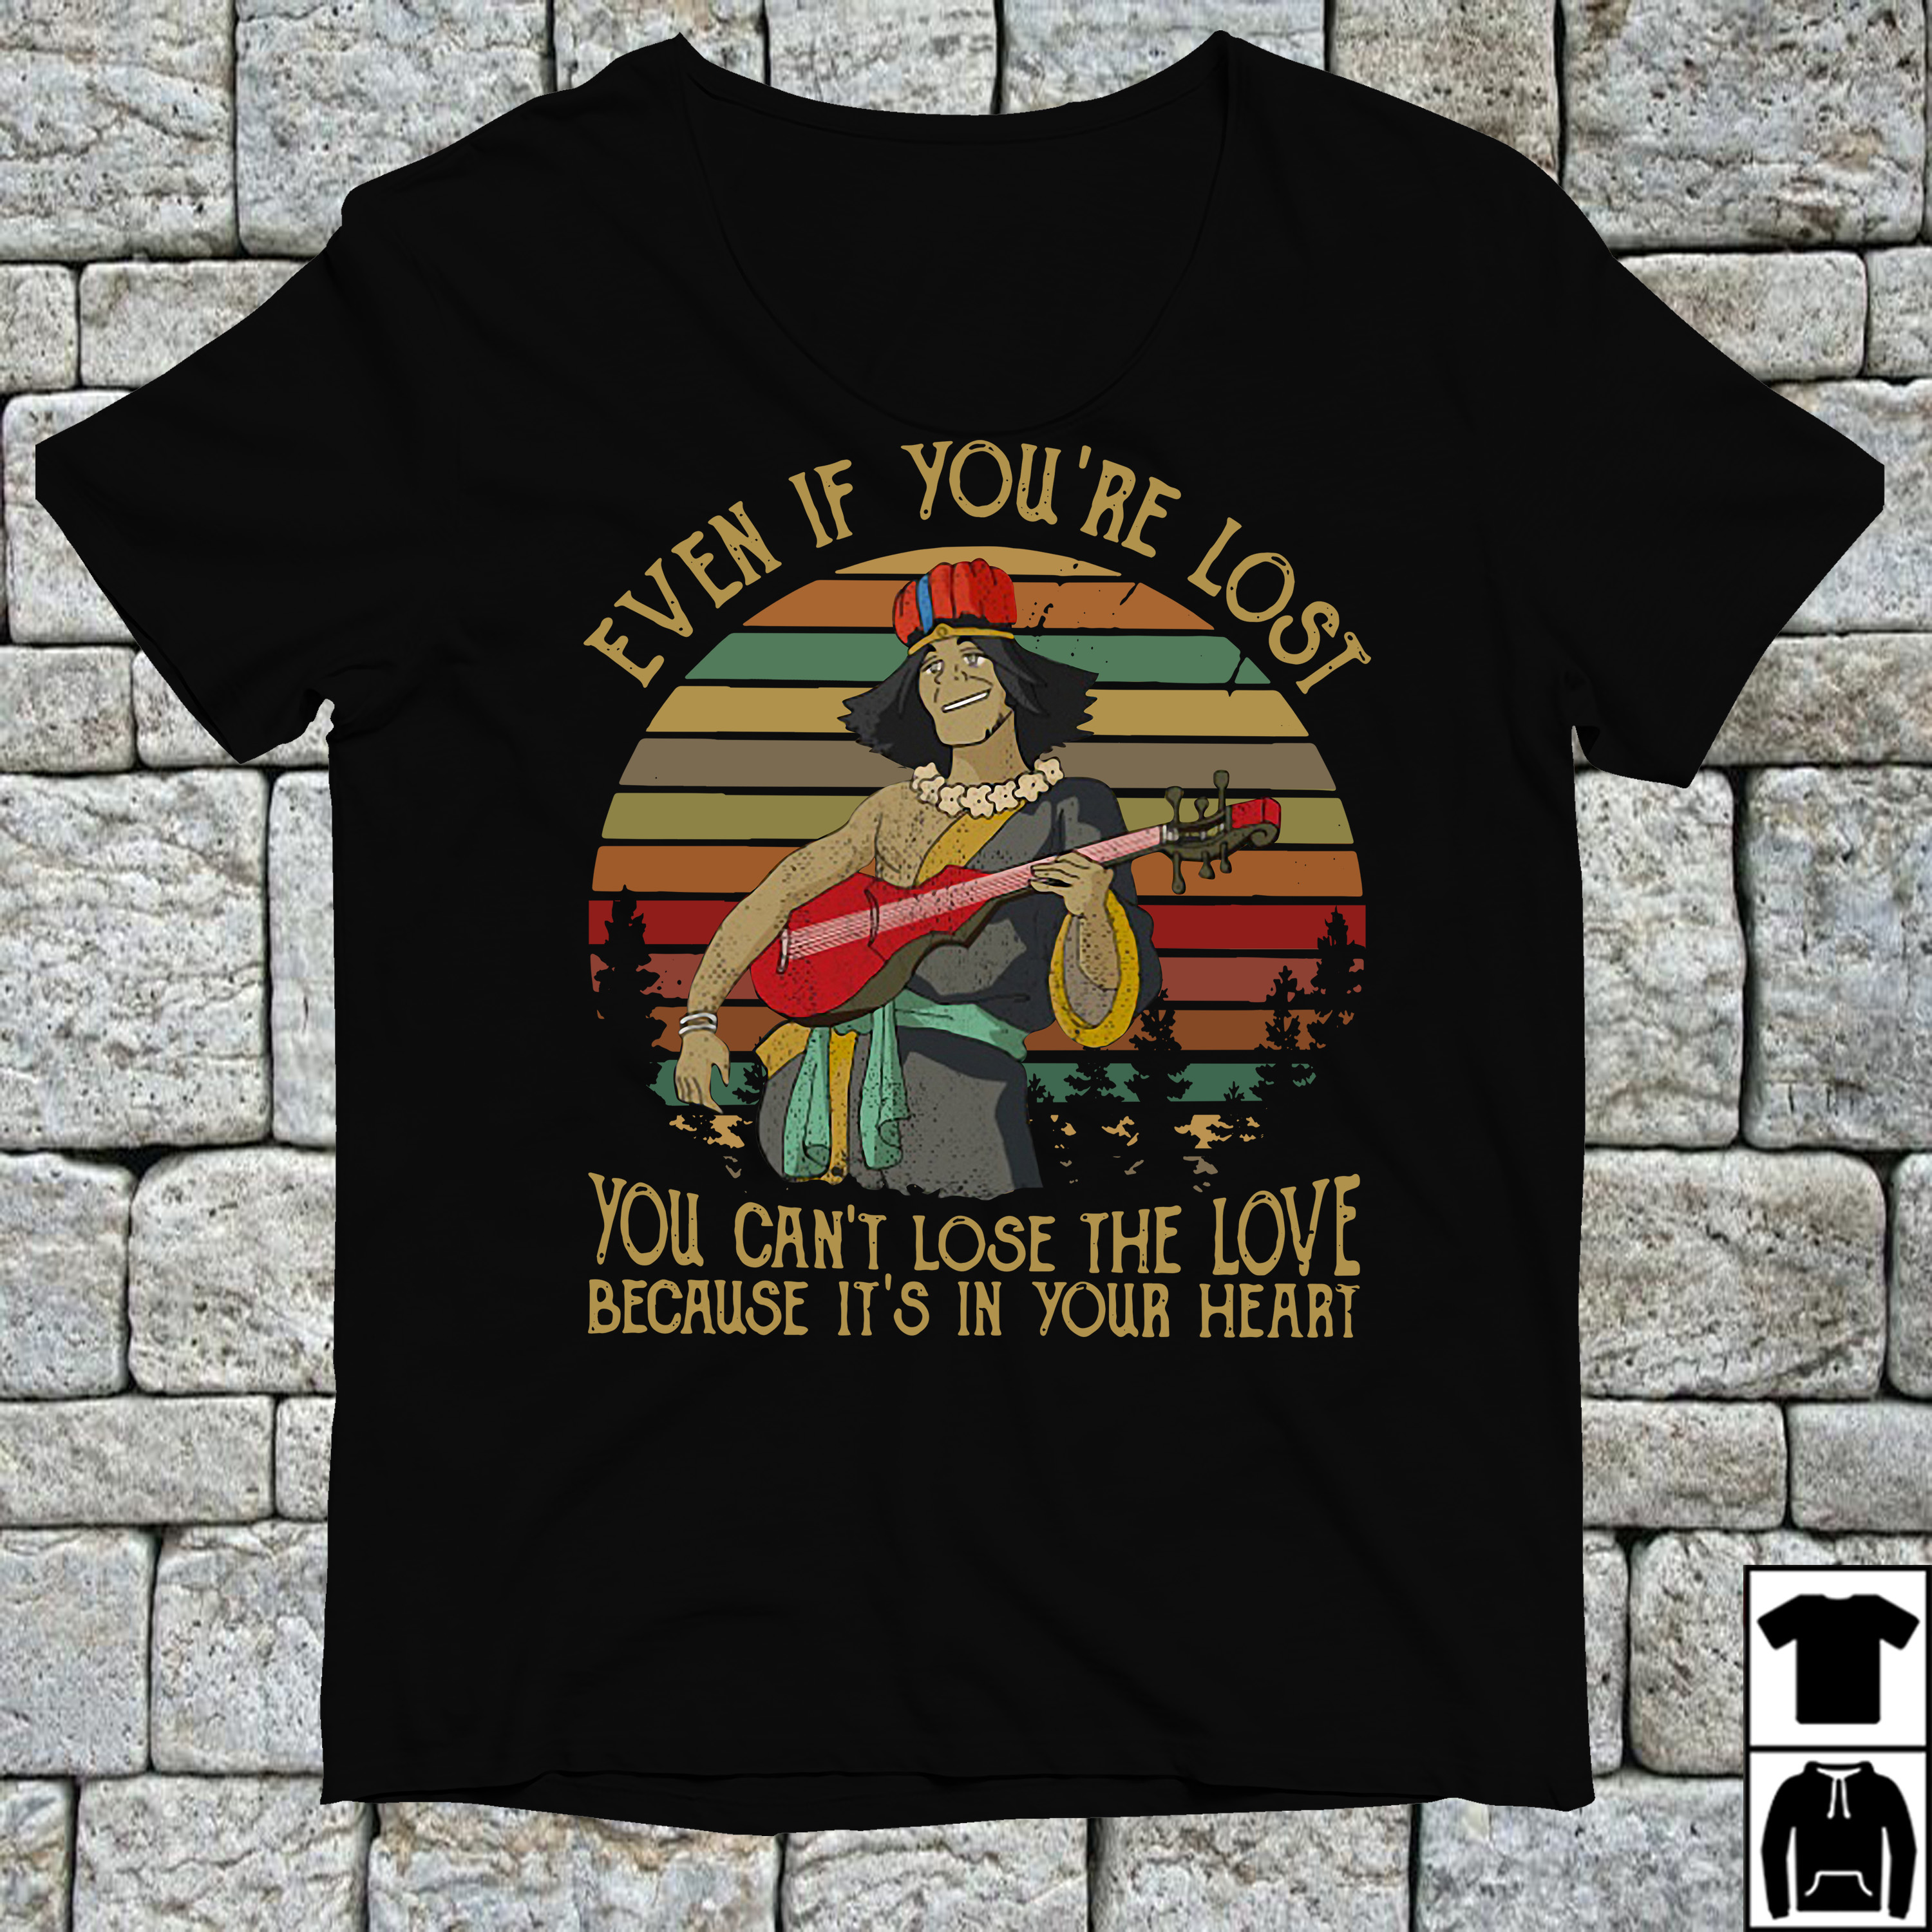 Even if you're lost you can't lose the love because it's in your heart shirt